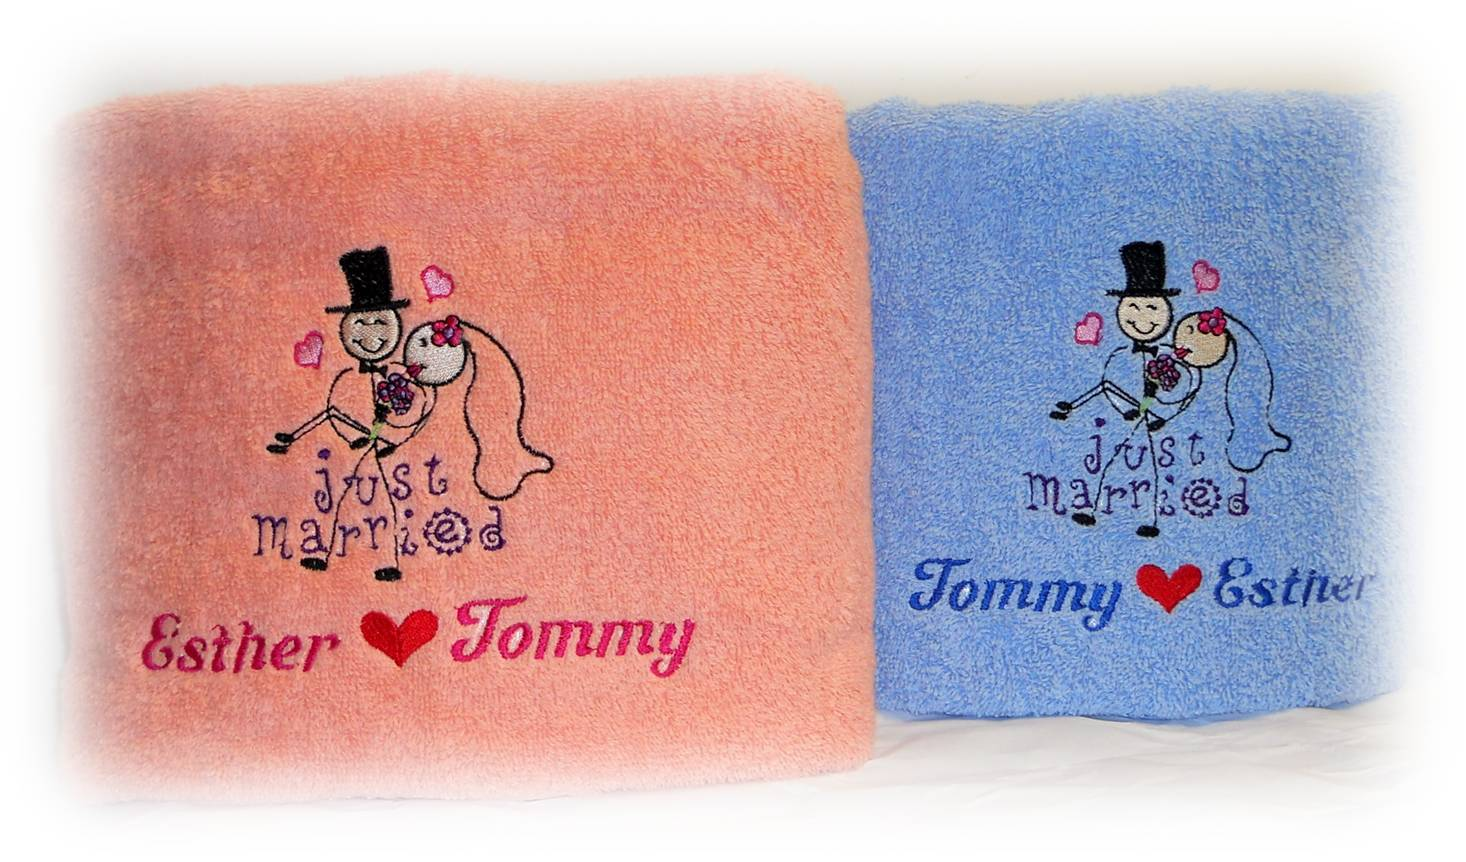 Personalised Wedding Gifts Towels : ... on customized gift ideas in Singapore: Wedding Towels with embroidery